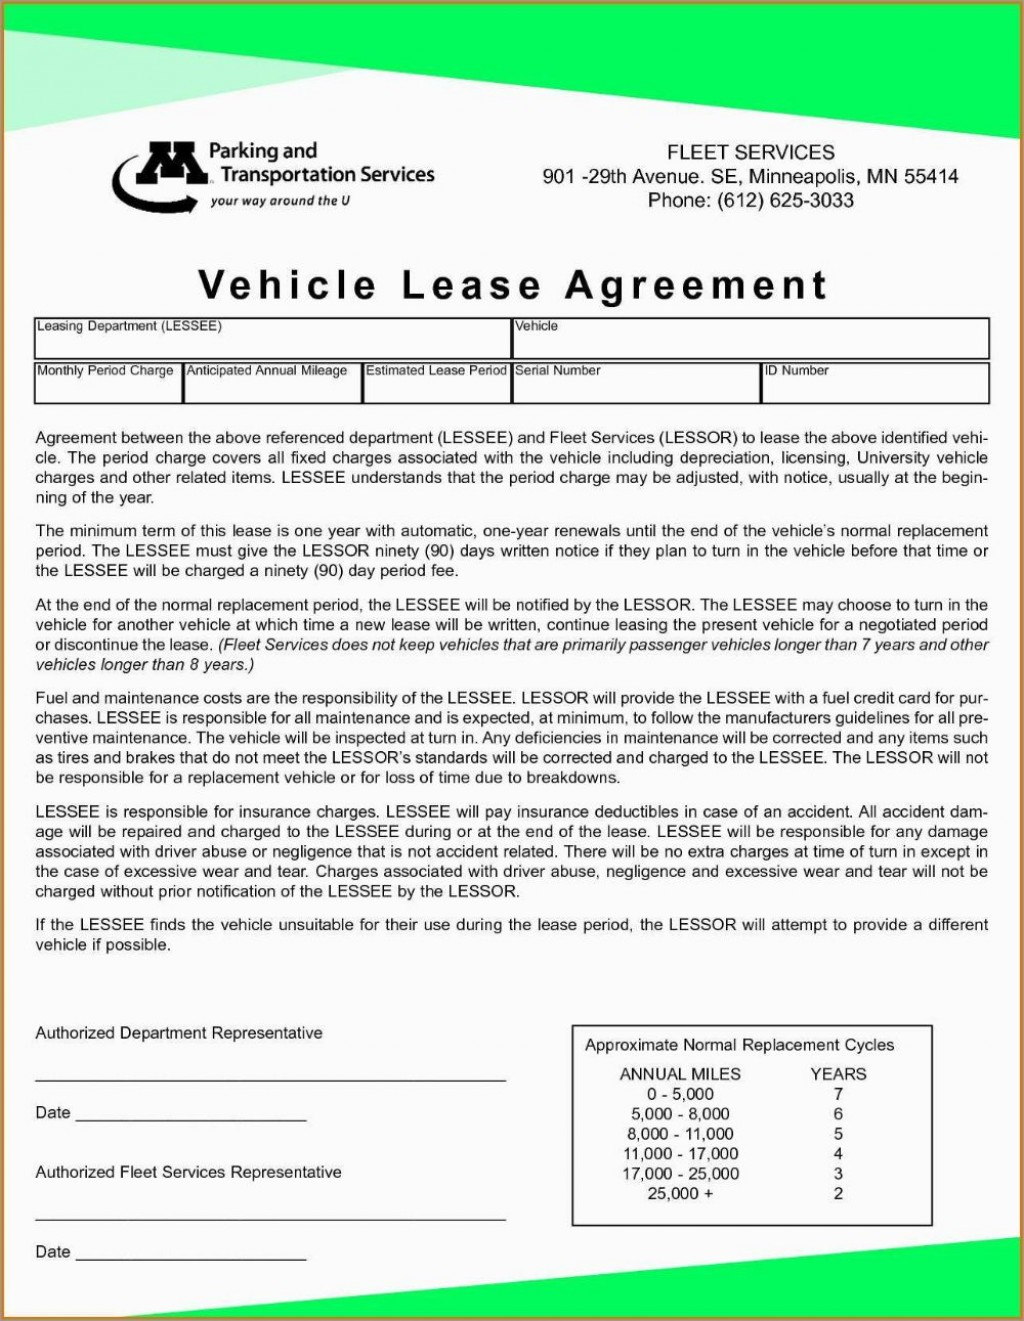 000 Striking Car Rental Agreement Template Idea  Vehicle Rent To Own South Africa SingaporeLarge